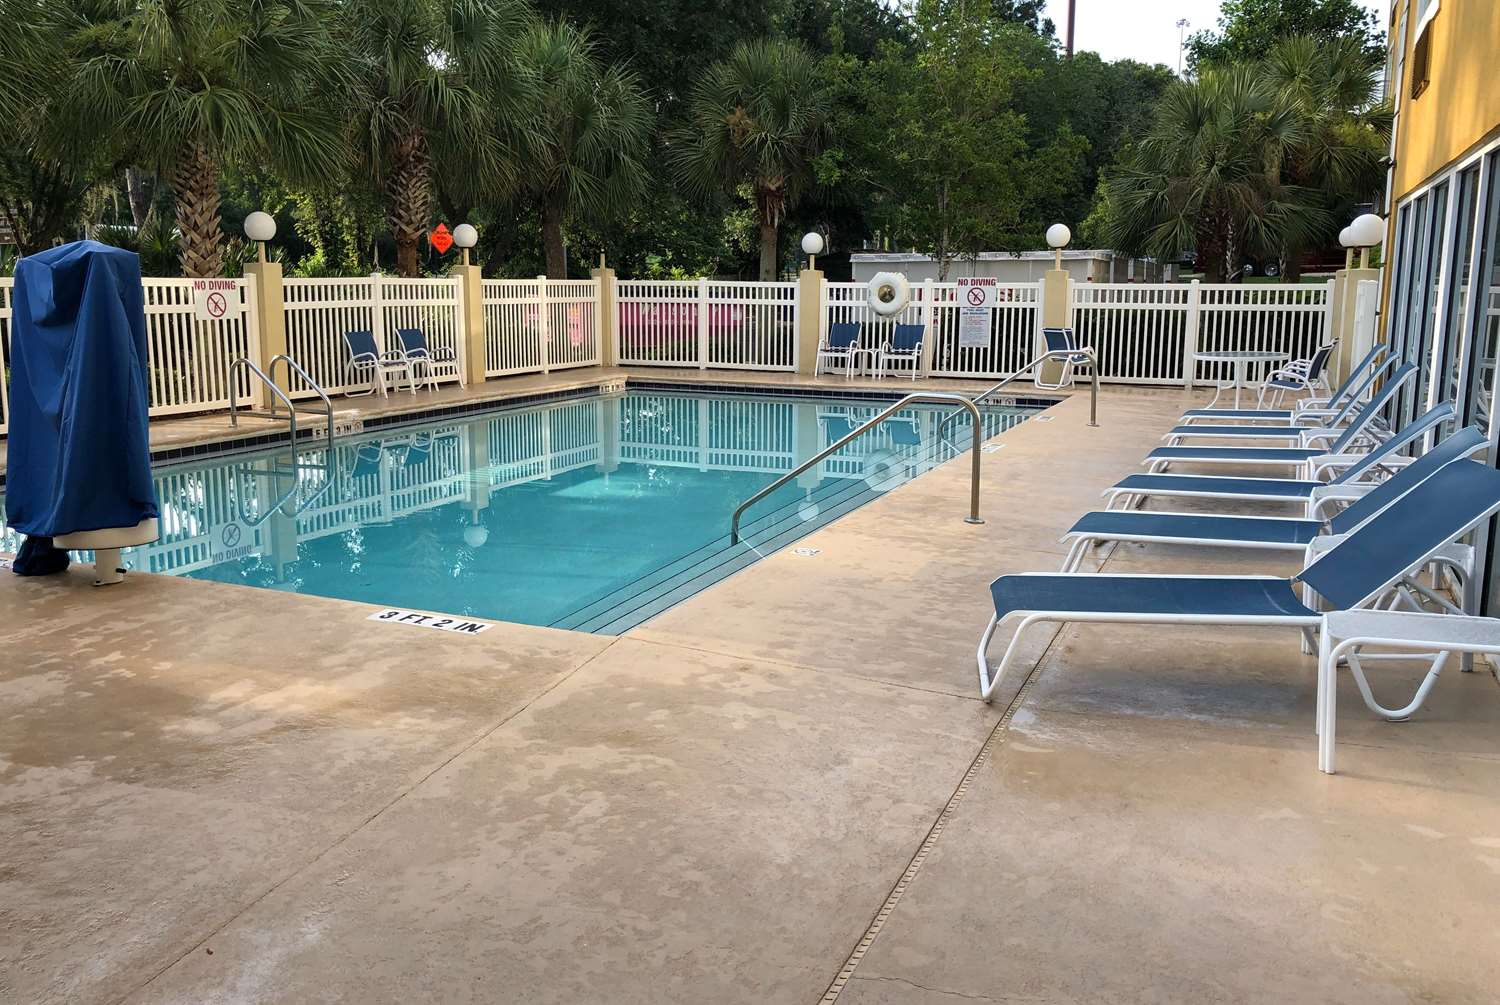 Pool - Hom Hotel & Suites Gainesville